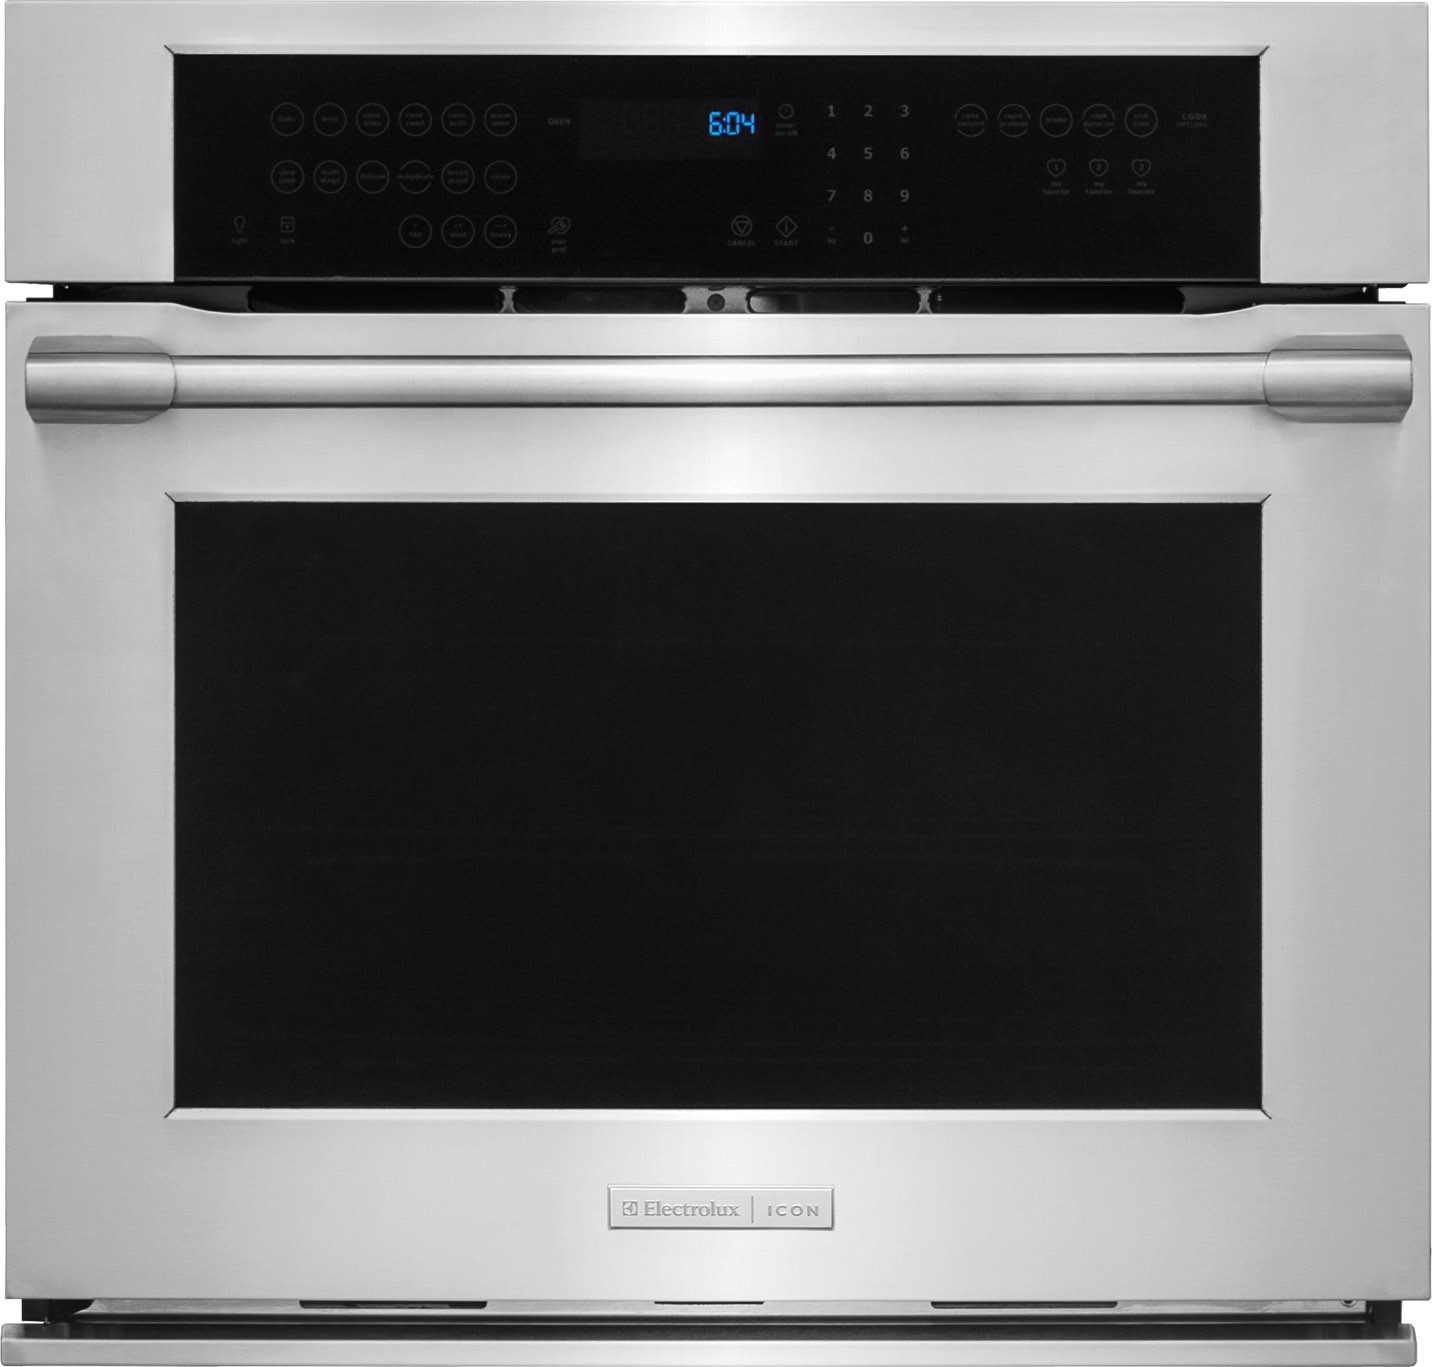 electrolux e30ew75pps 30 inch single electric wall oven with 4 8 cu GE Oven Wiring Diagram electrolux icon professional